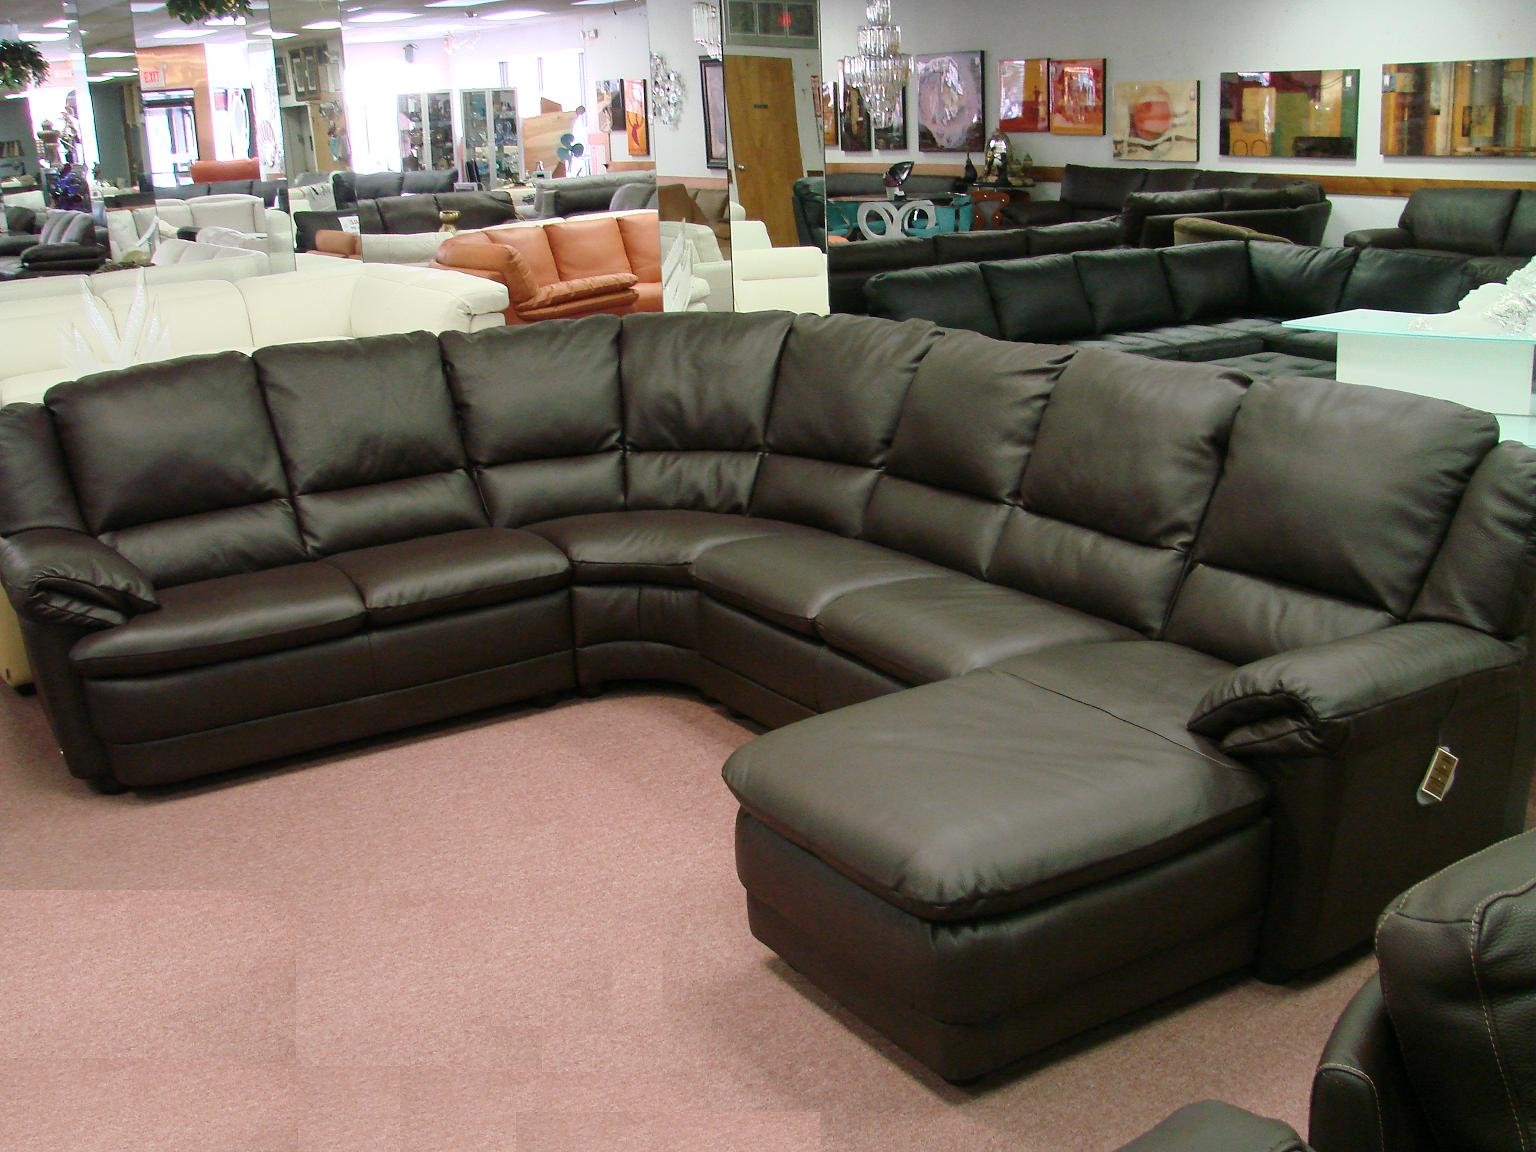 president's day sofa sales. natuzzi leather sofas  sectionals by interior concepts furniture